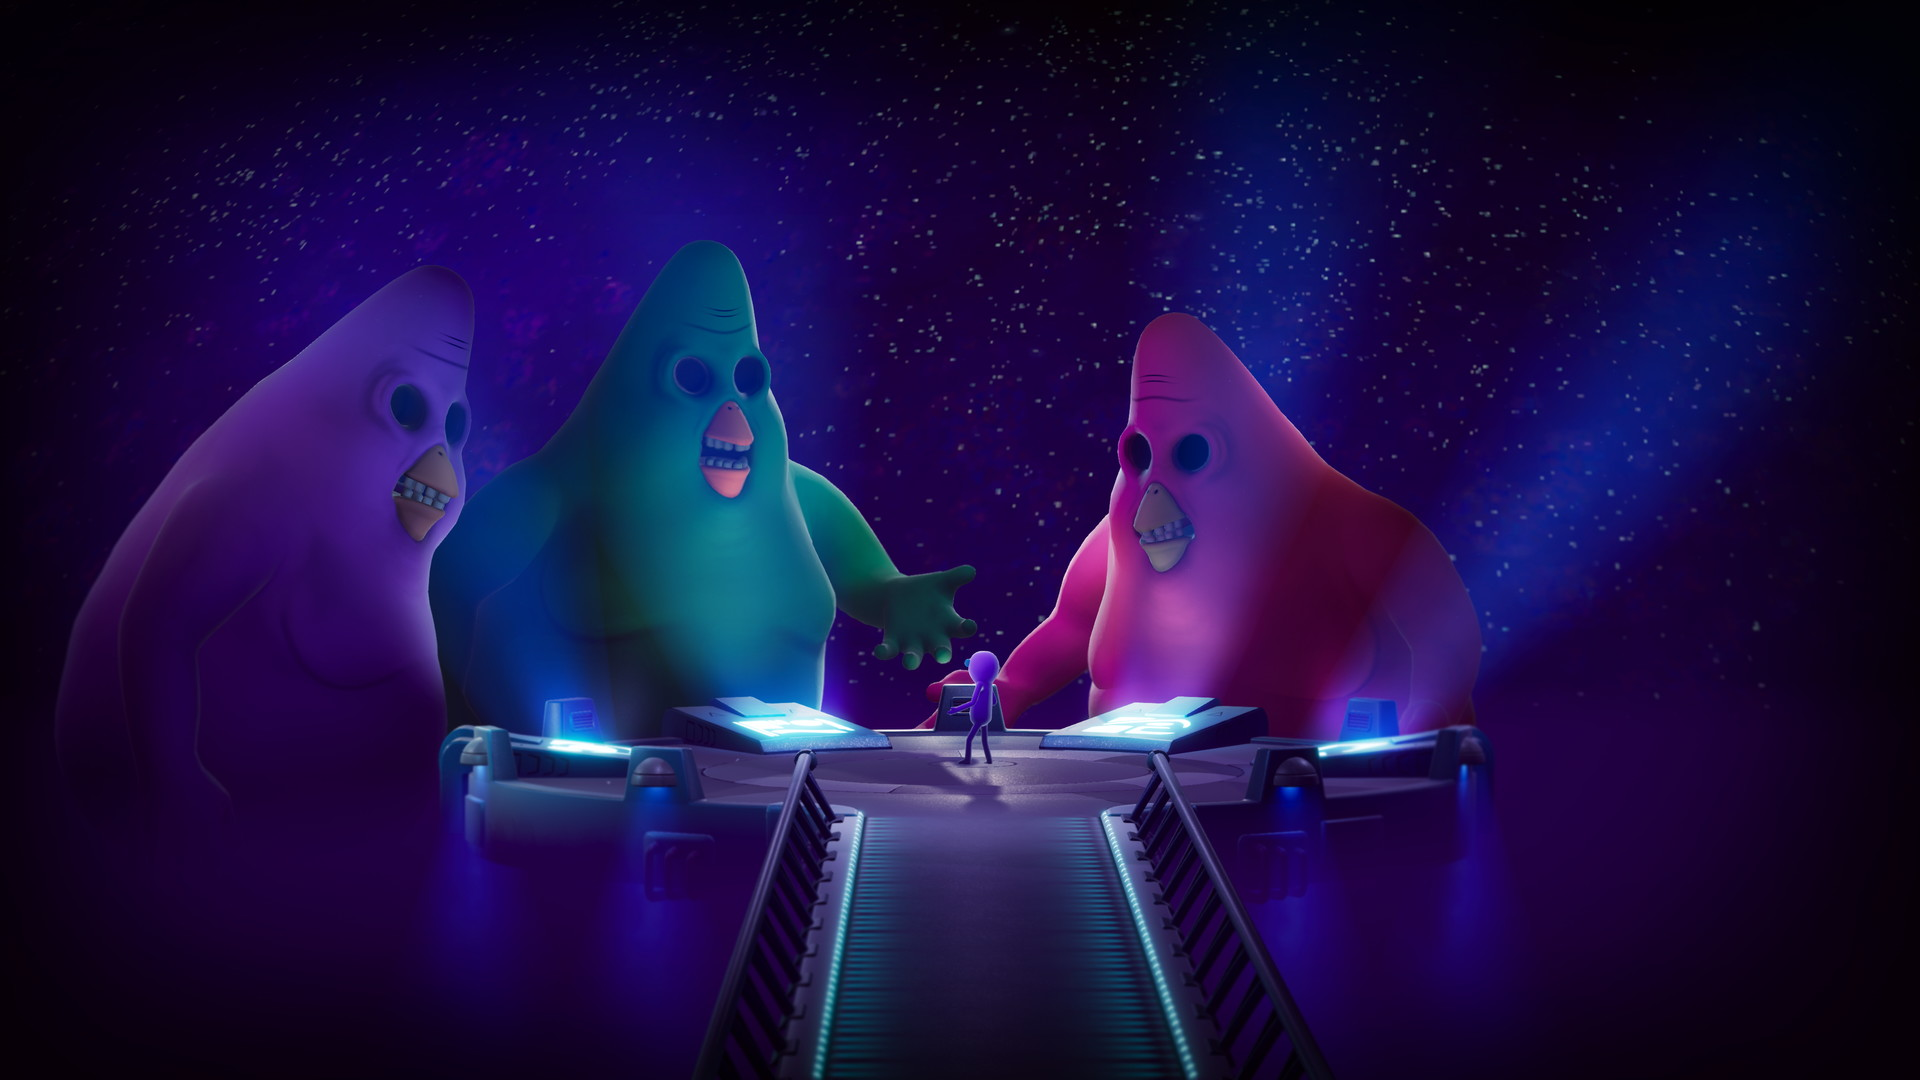 Trover Saves the Universe - screenshot 7